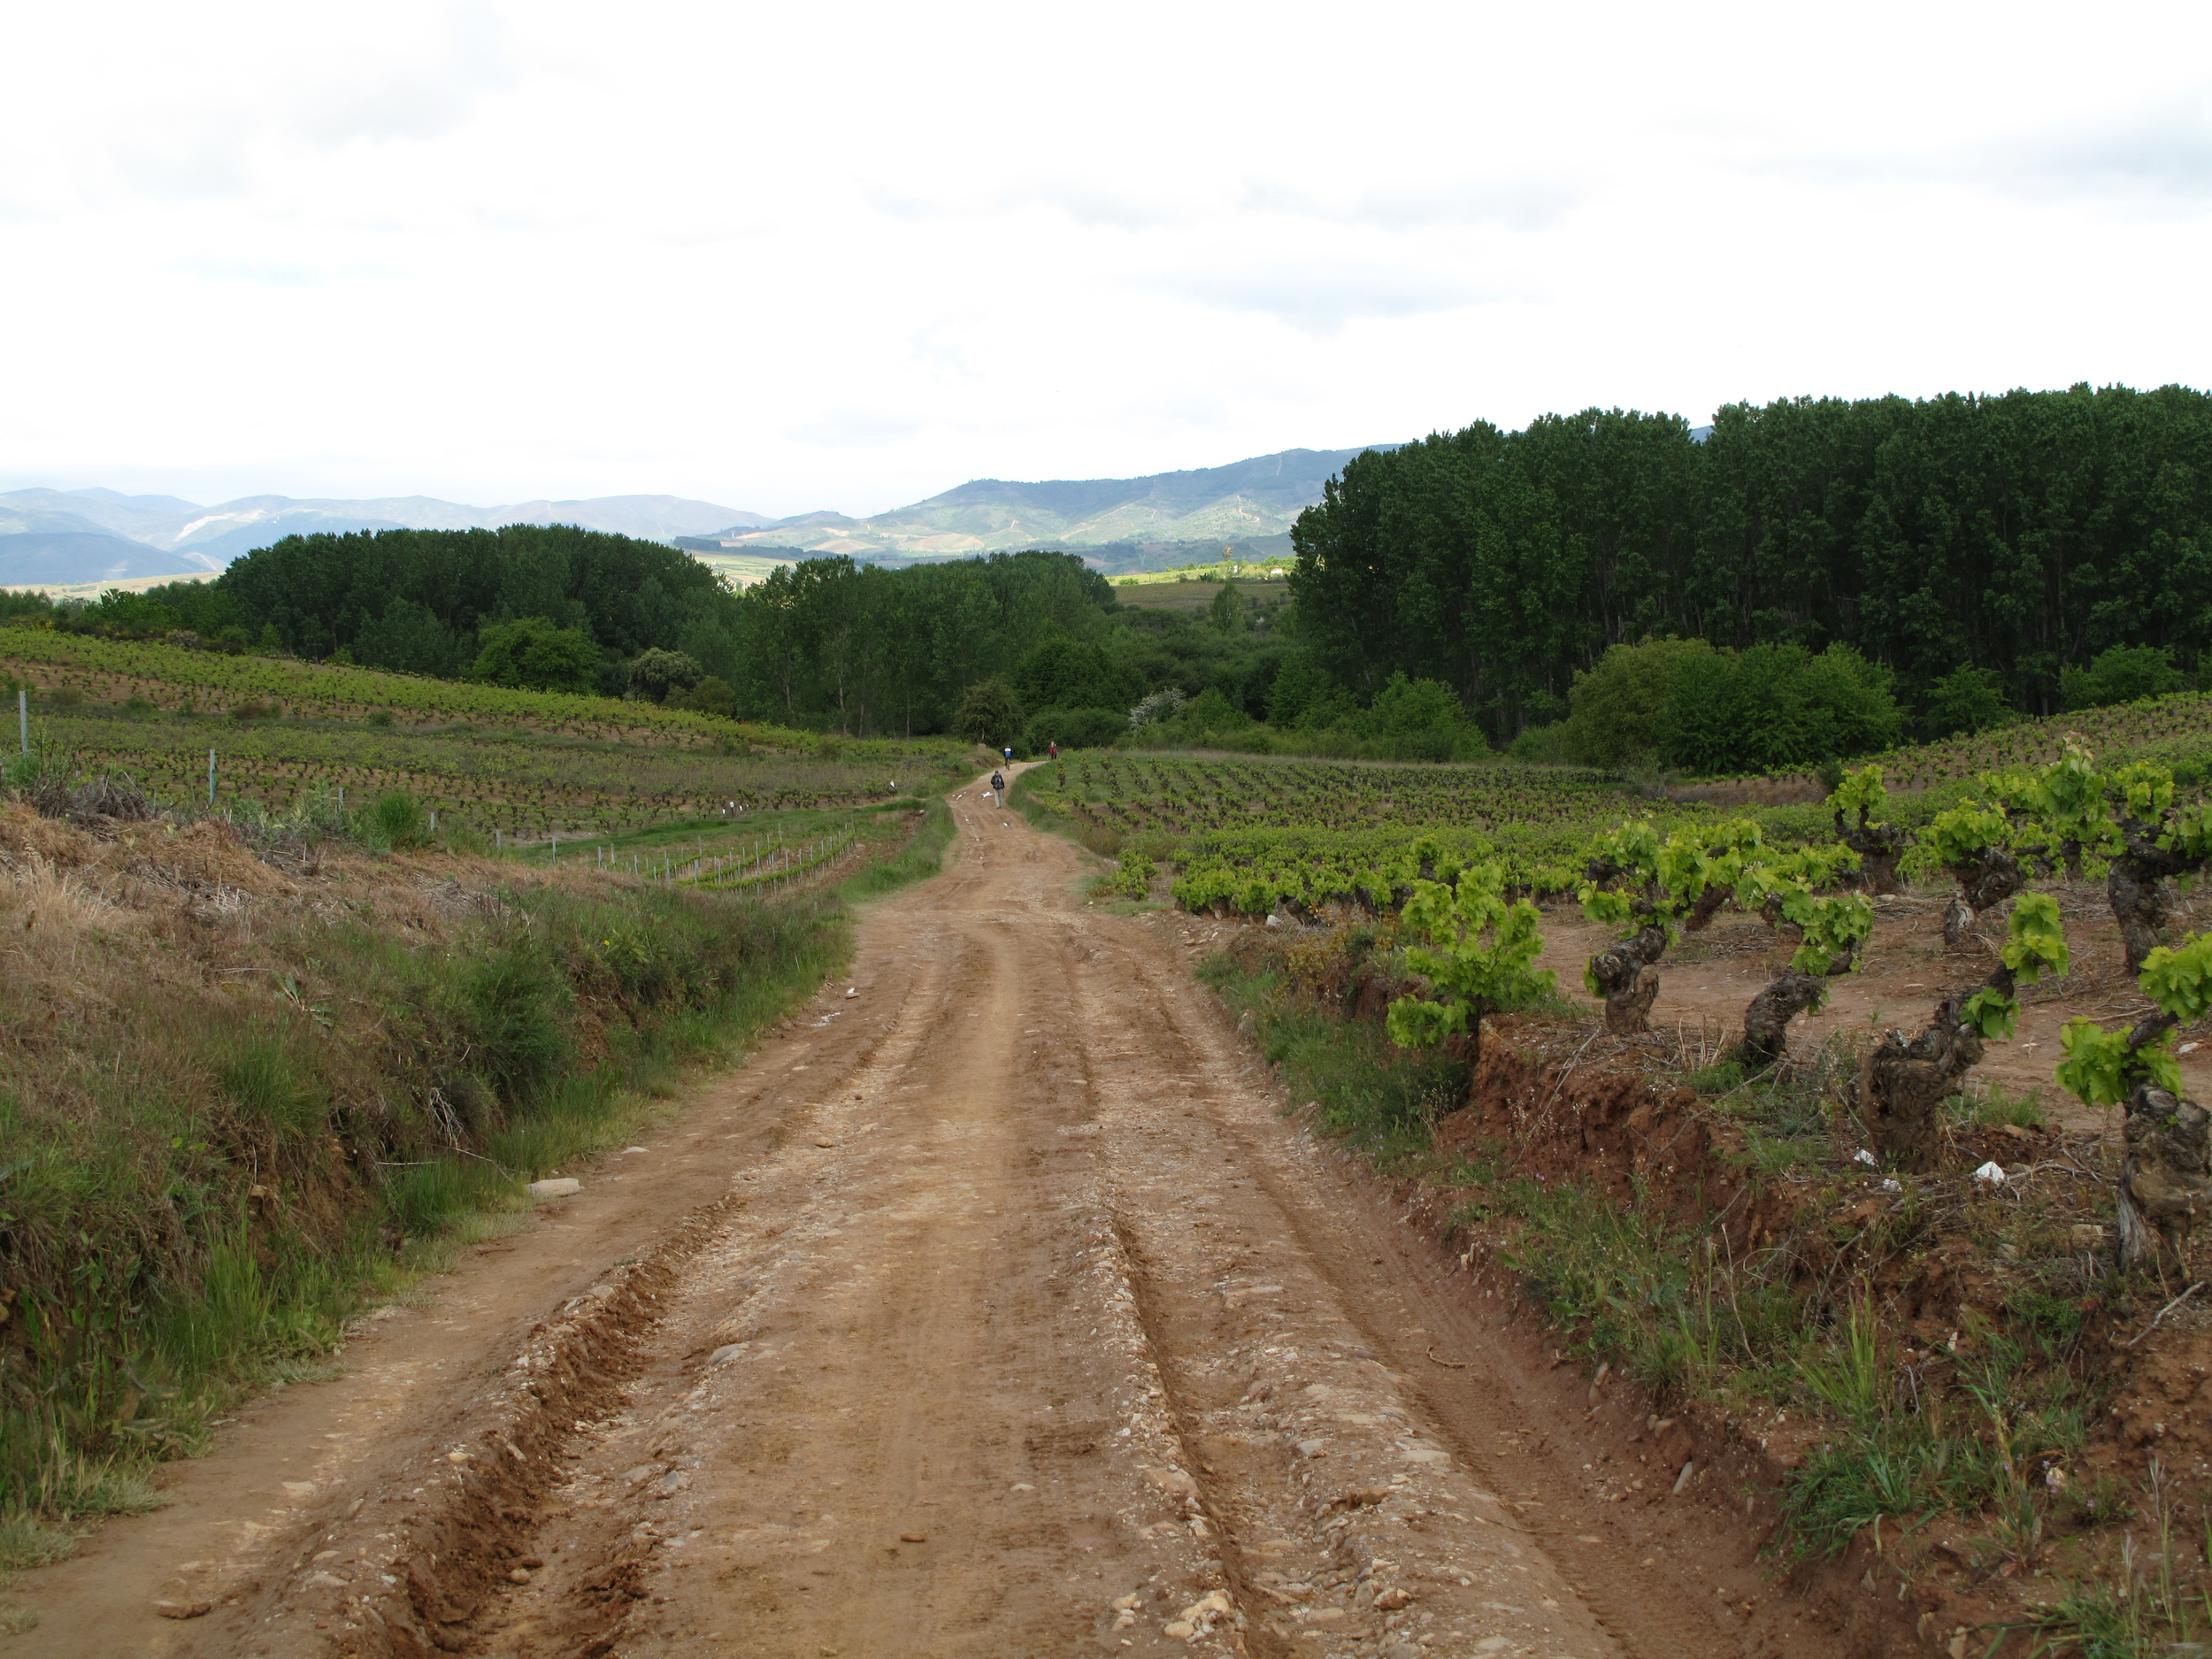 Walking through fields of grapes was one of my favorite activities. This walk into Villafranca del Bierzo is one of the most scenic, in my opinion.